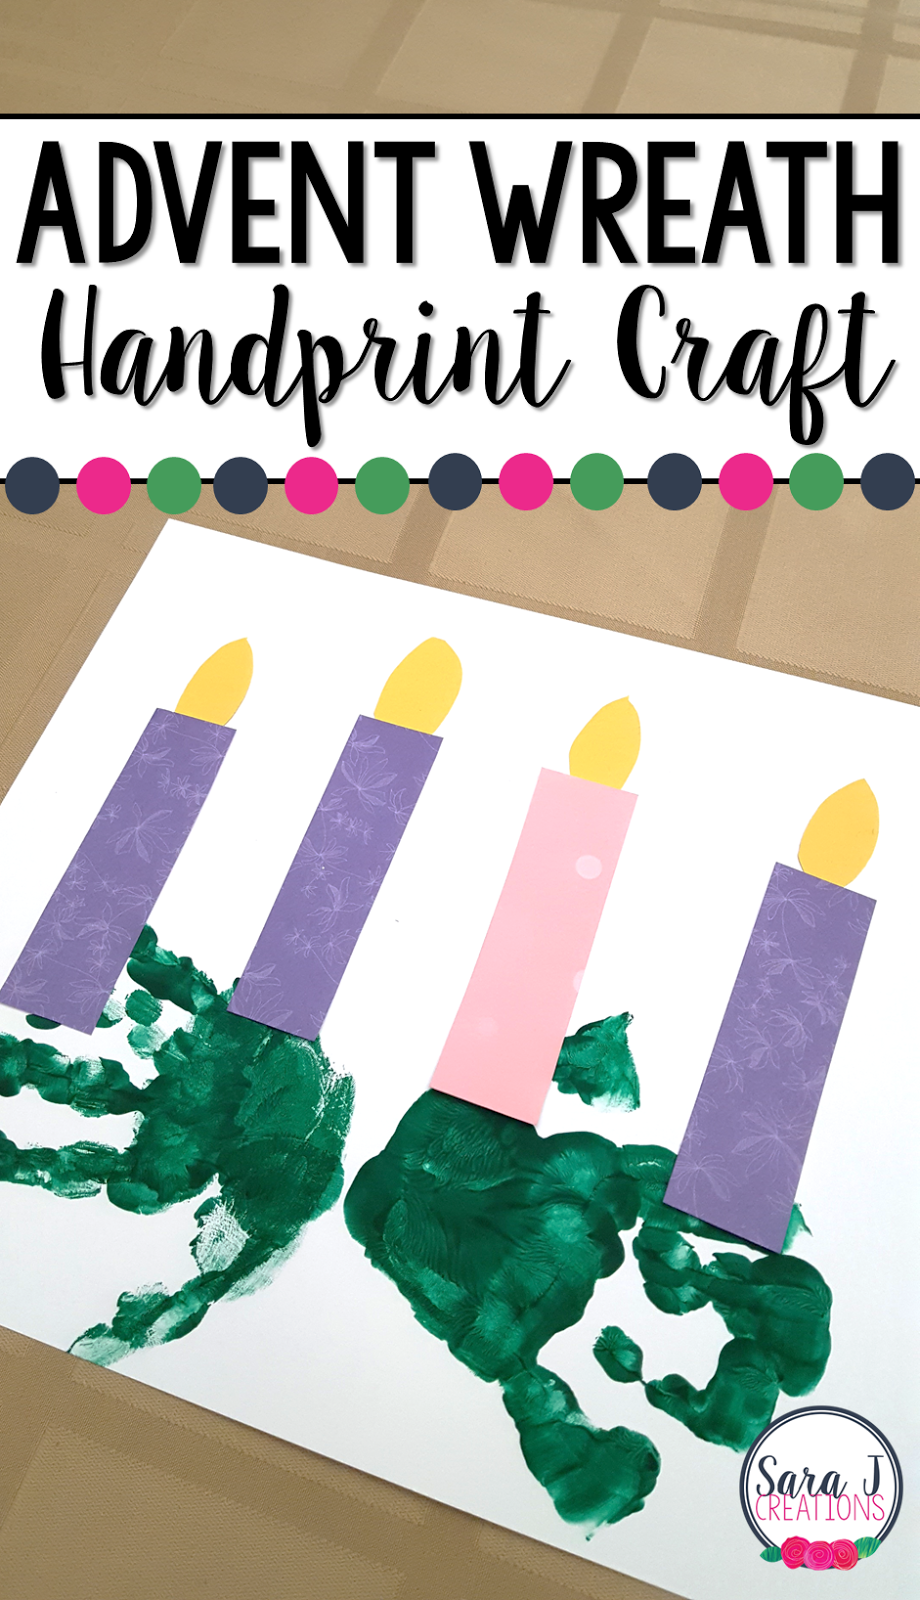 Find out the steps for this adorable Handprint Advent Wreath. #craft #sarajcreations #catholic #advent